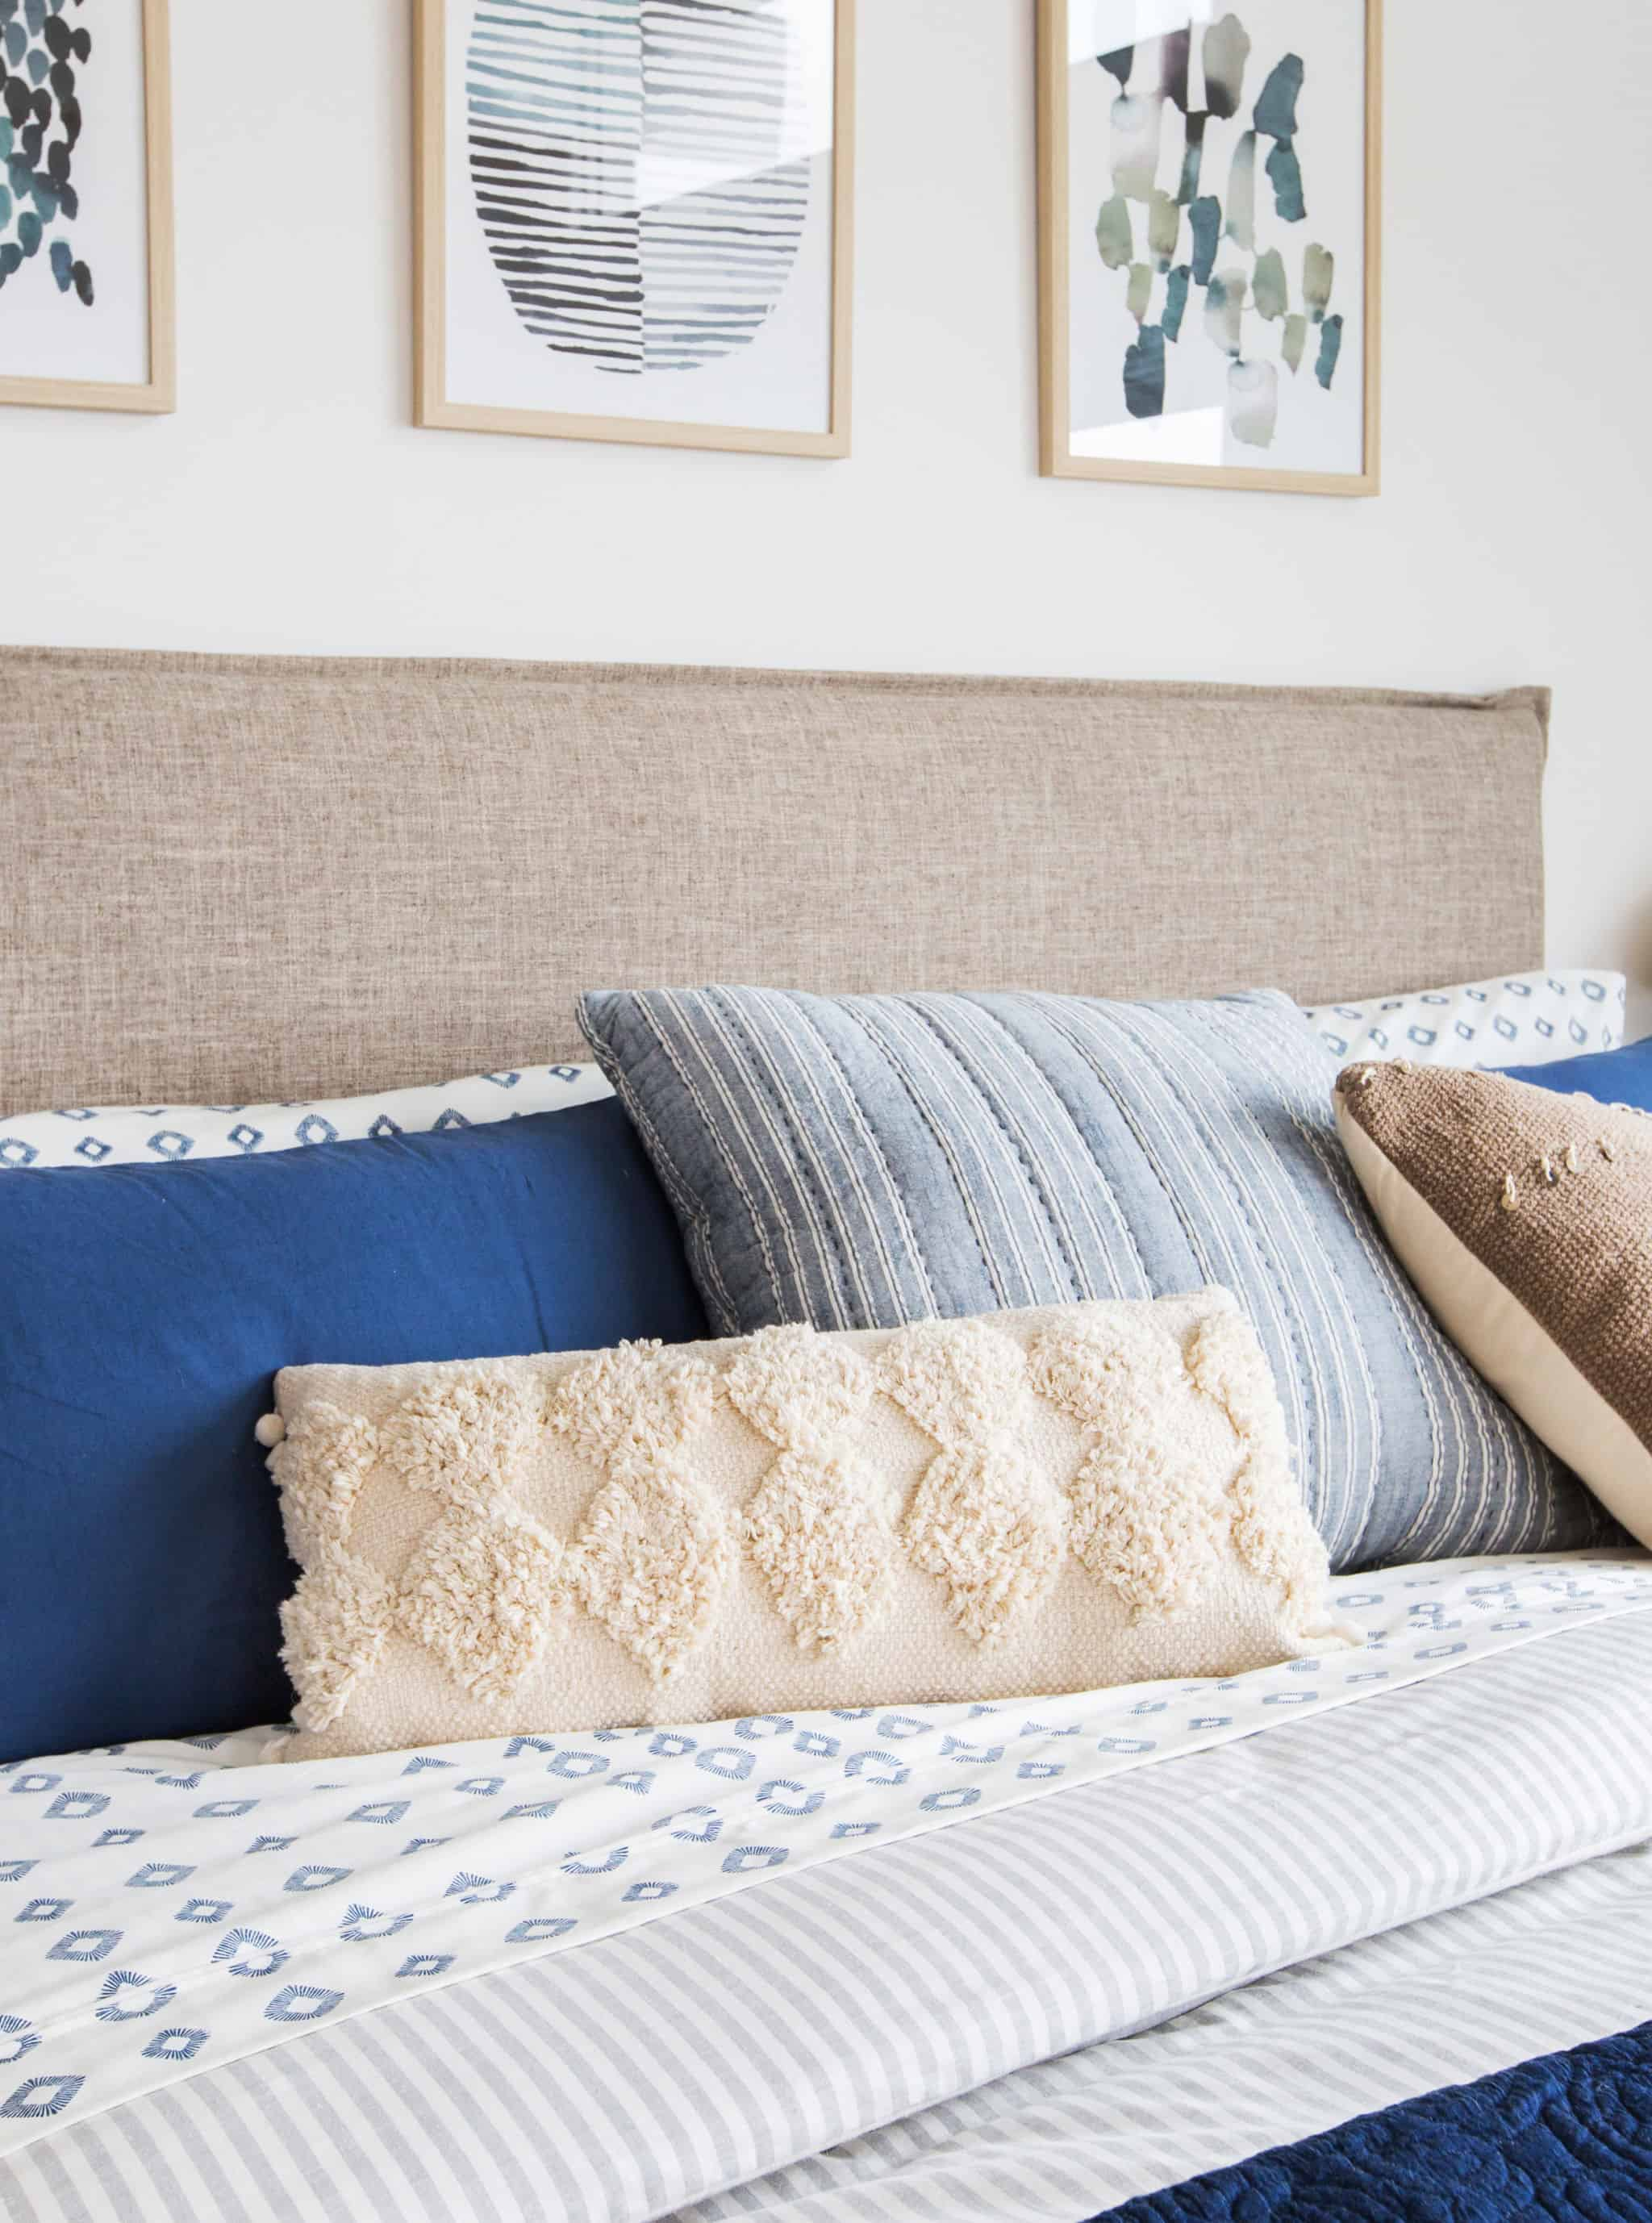 emily-henderson_master-bedroom_target_bedding_layered_light_texture_blue_white_brass_masculine_soft_5